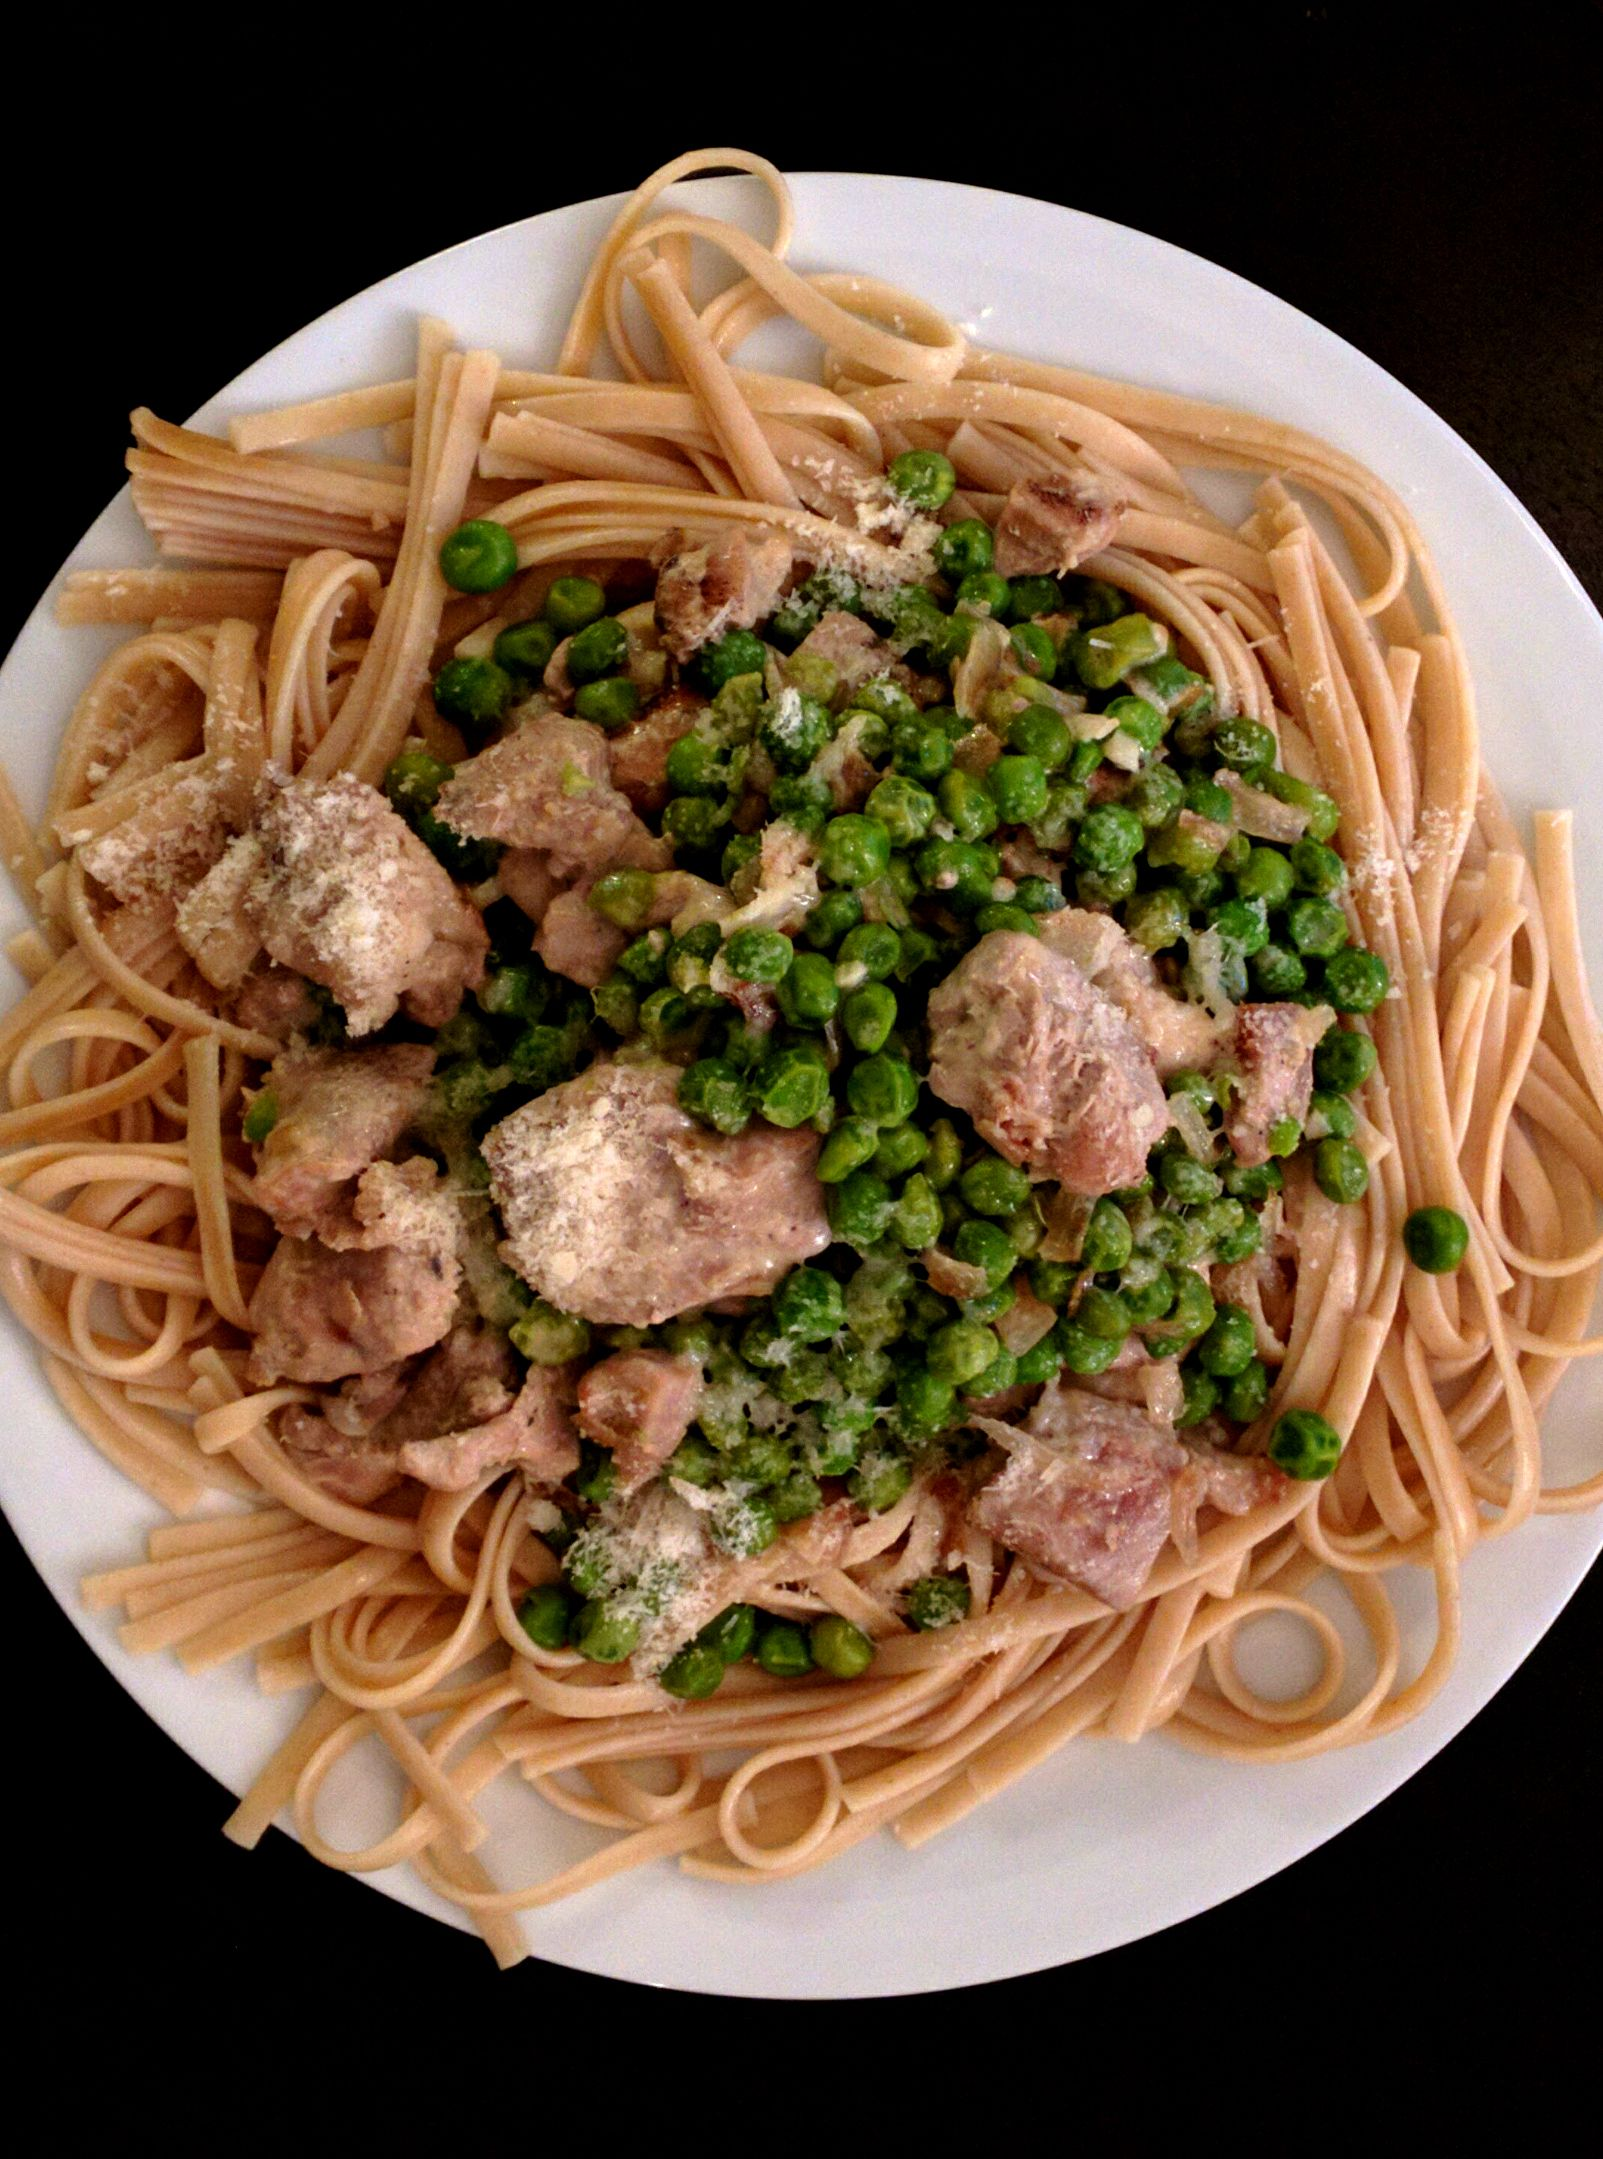 Turkey linguine with green peas (from Adams Matkasse)